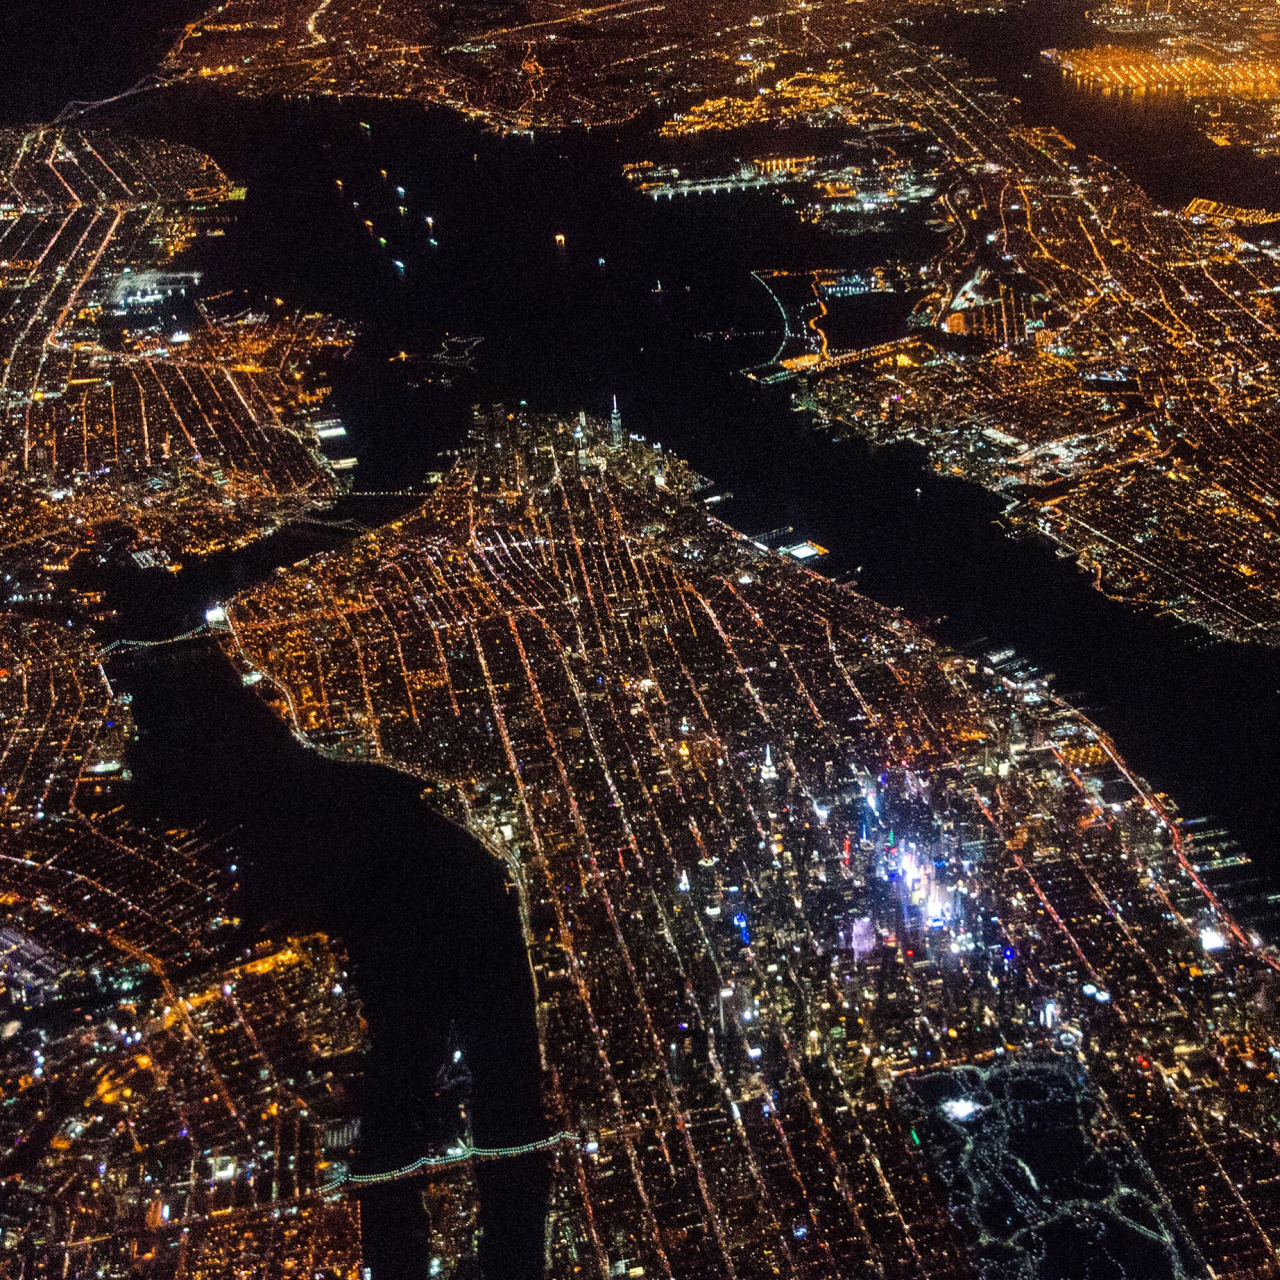 New York at night.